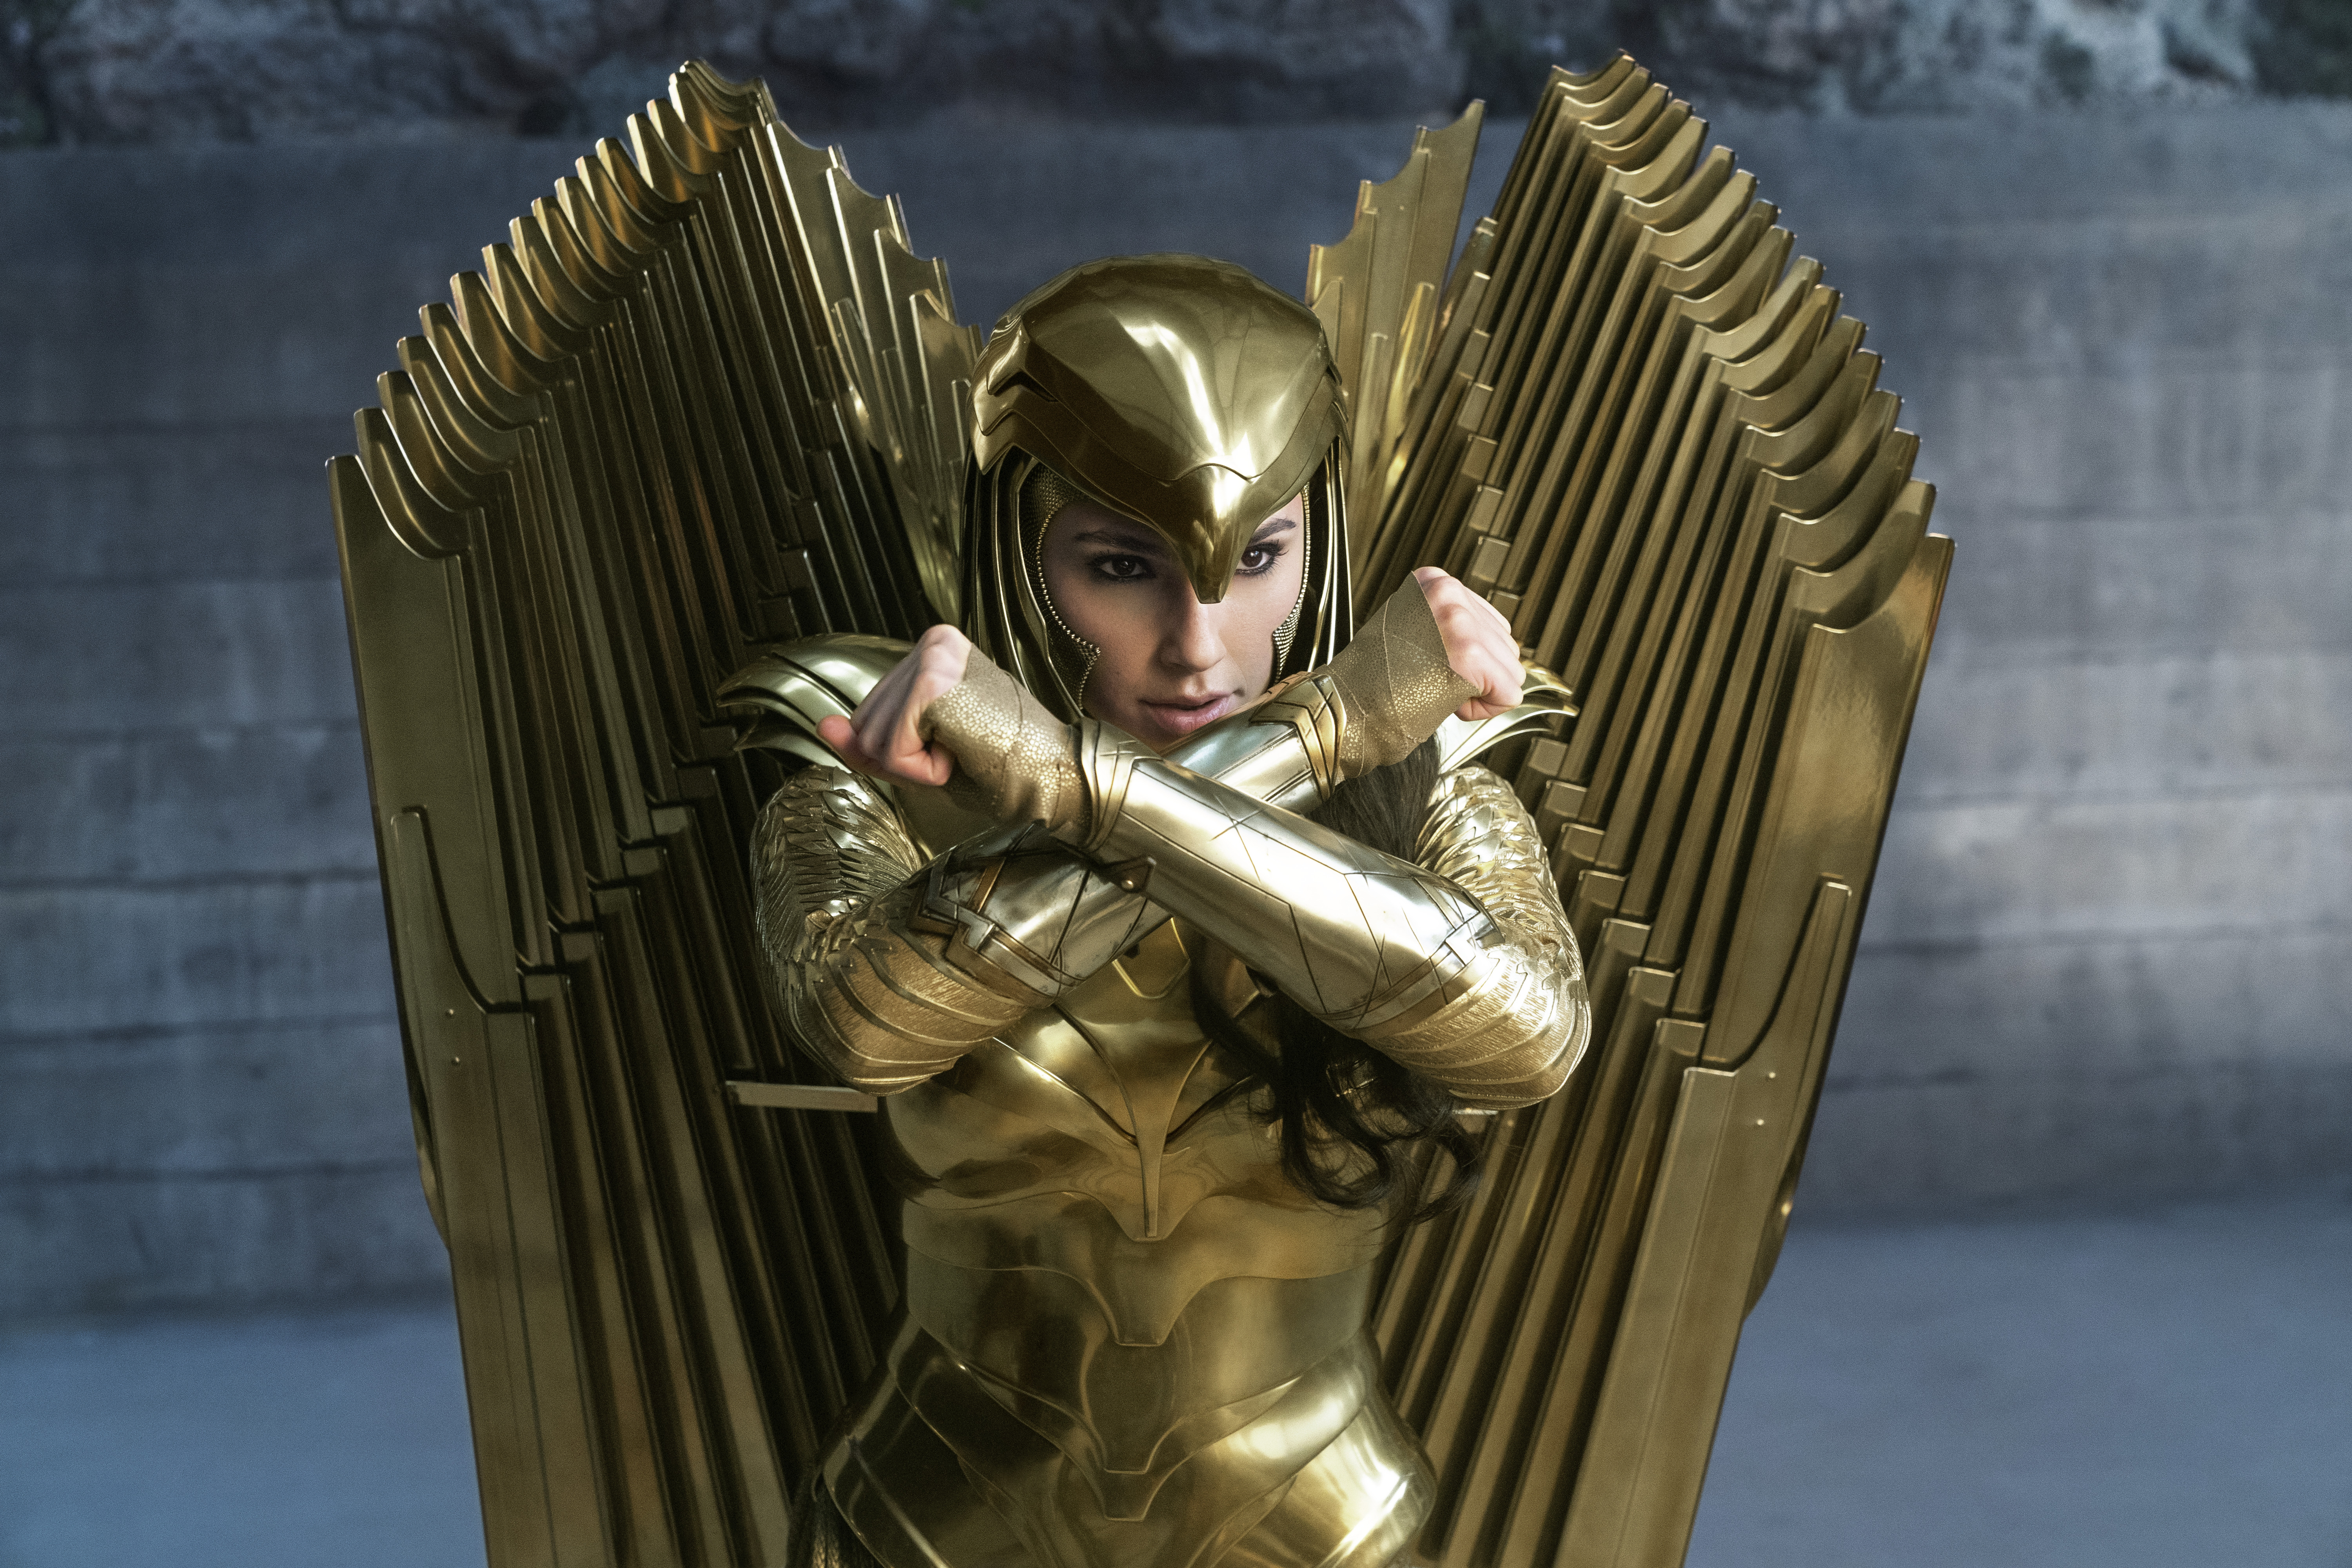 wonder woman in eagle armor from wonder woman 1984